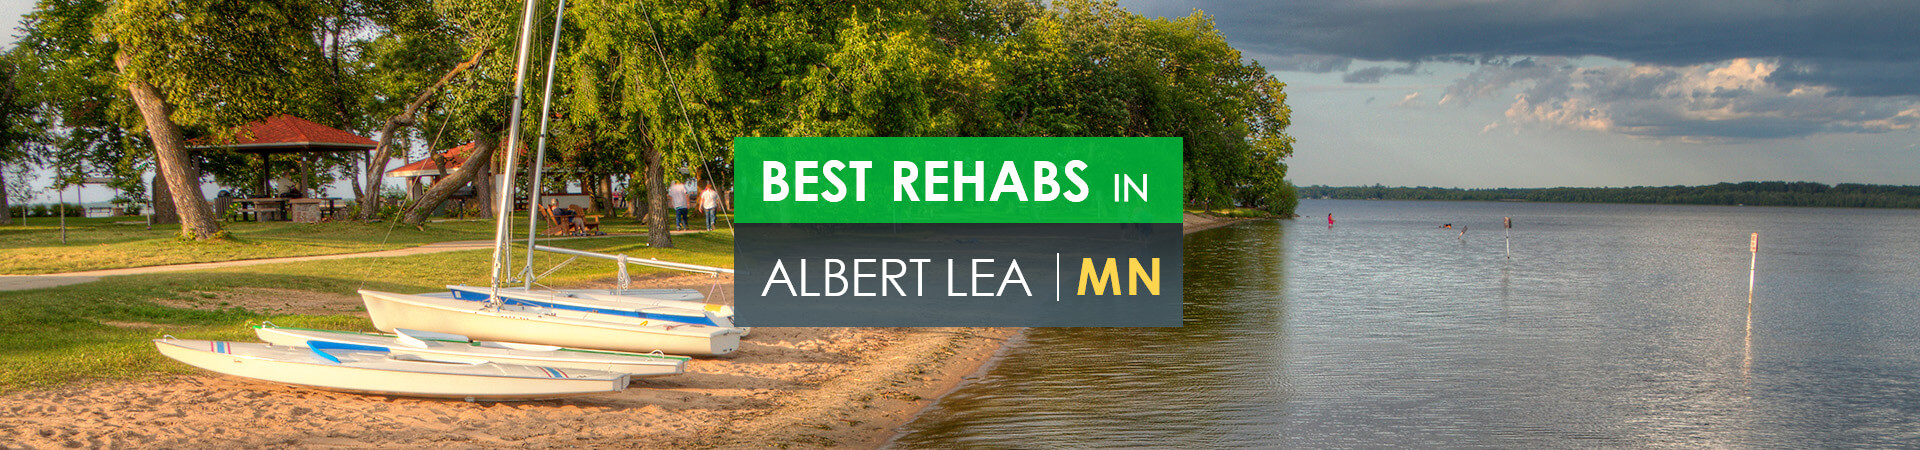 Best rehabs in Albert Lea, MN